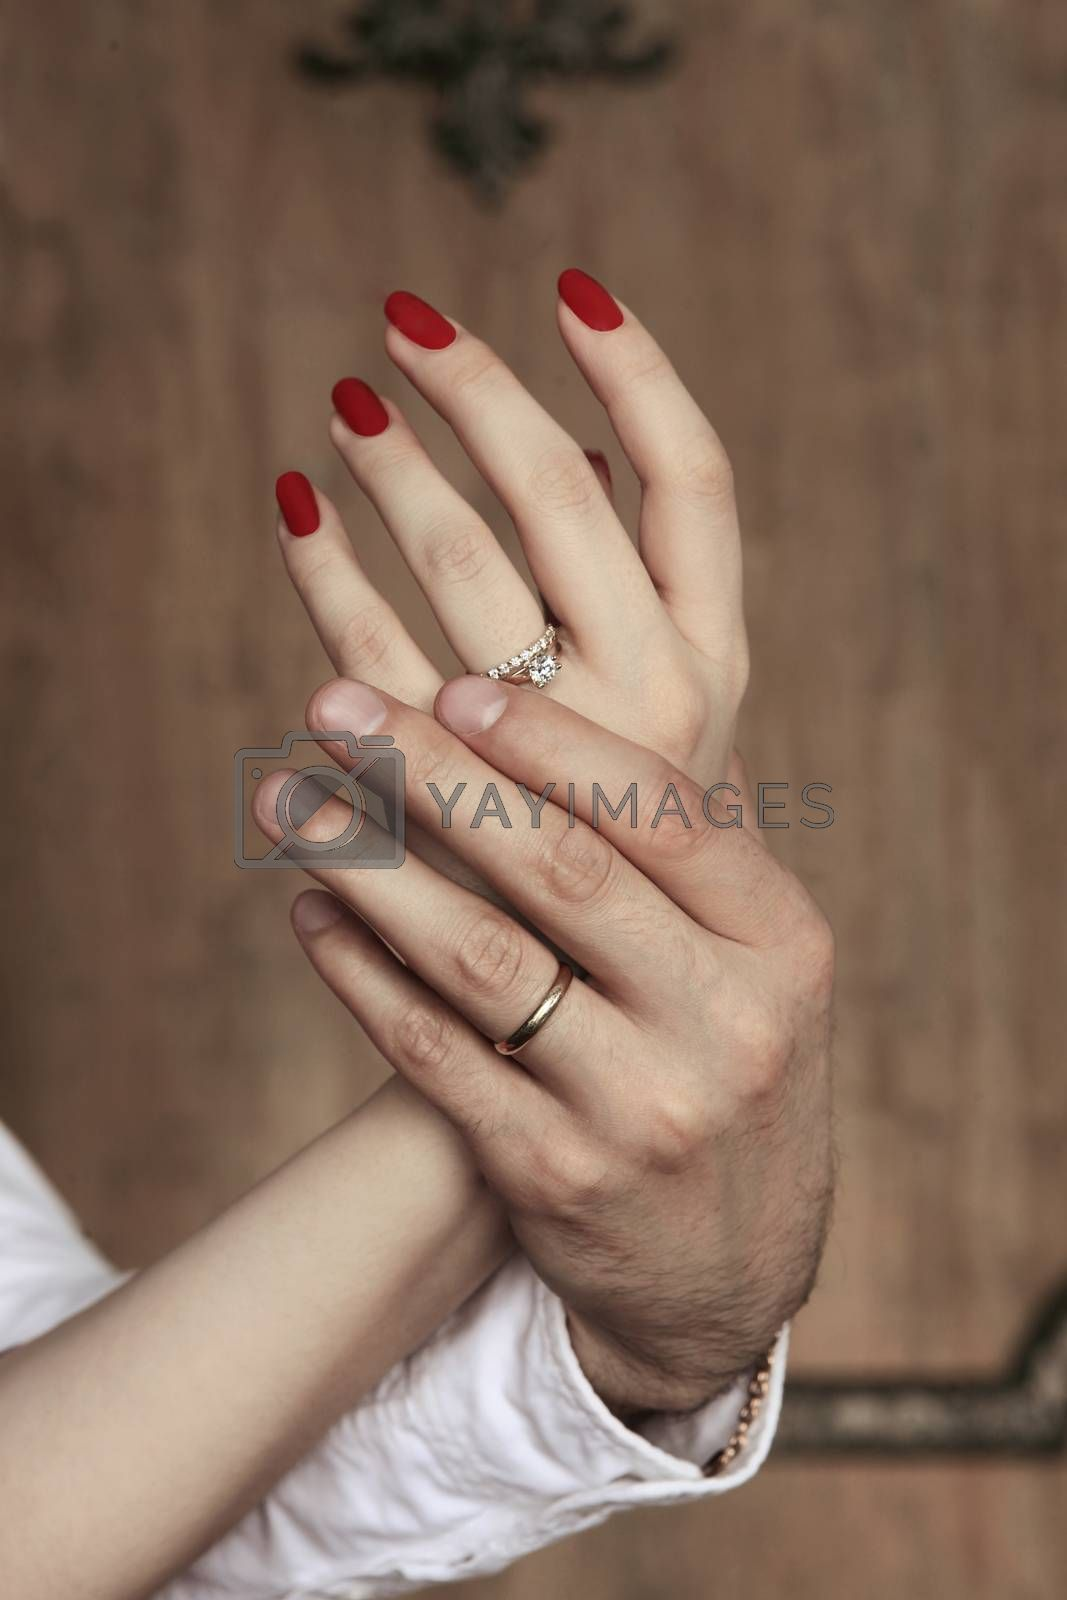 Female hands in man's hands on a wooden background